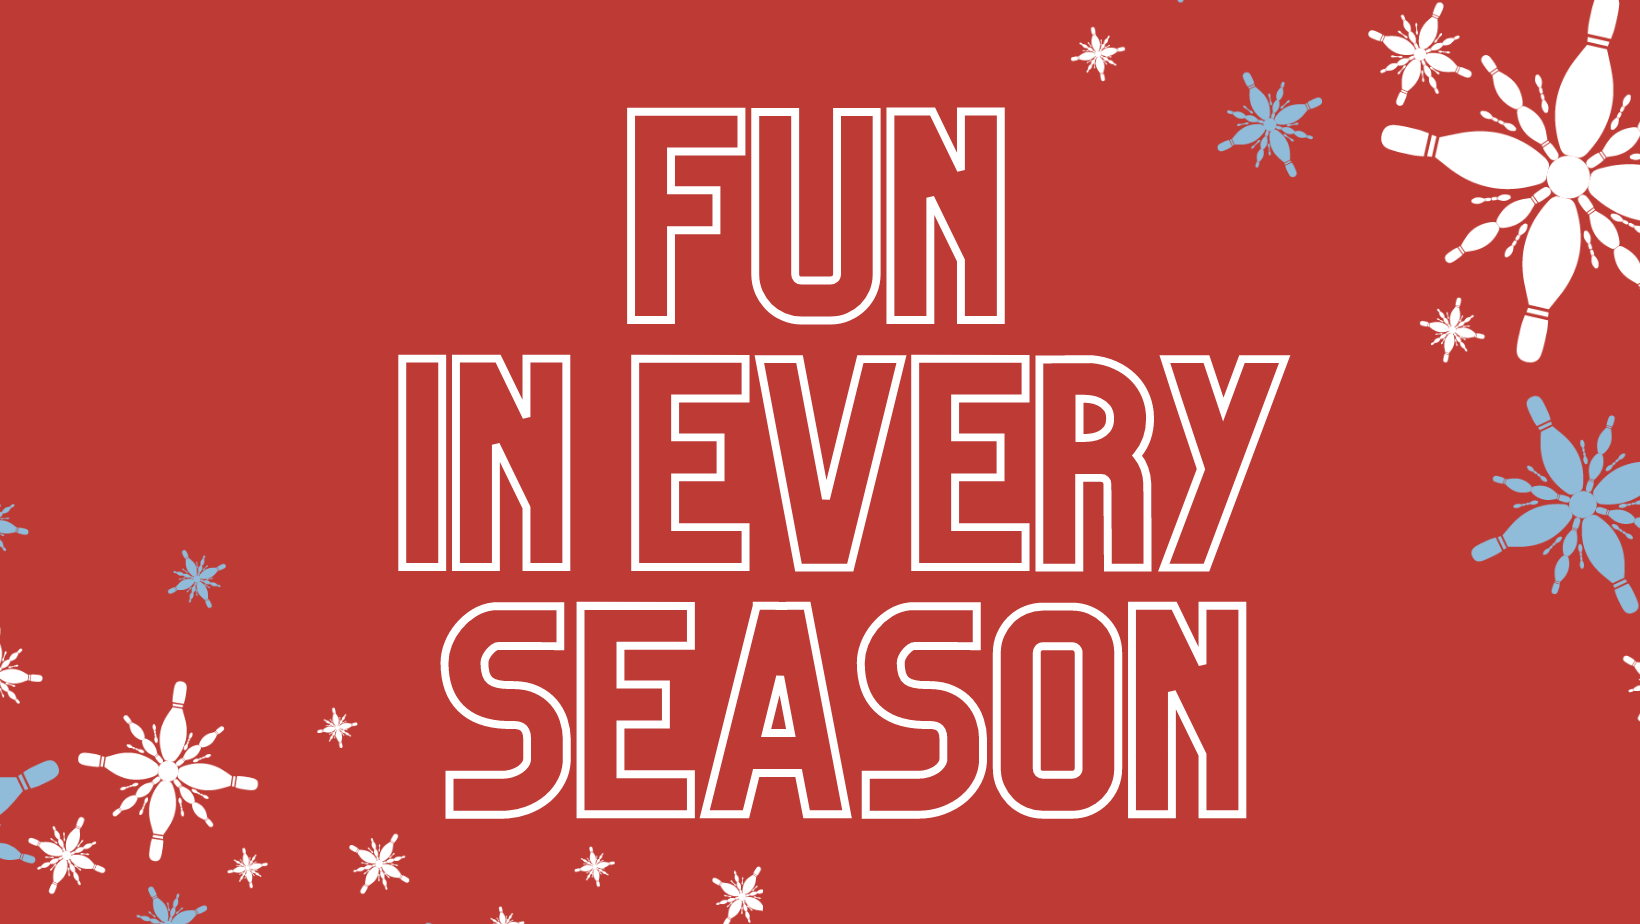 seasonal promotions | JB's on 41 | holiday specials all year long | JB's on 41 | Milwaukee, WI